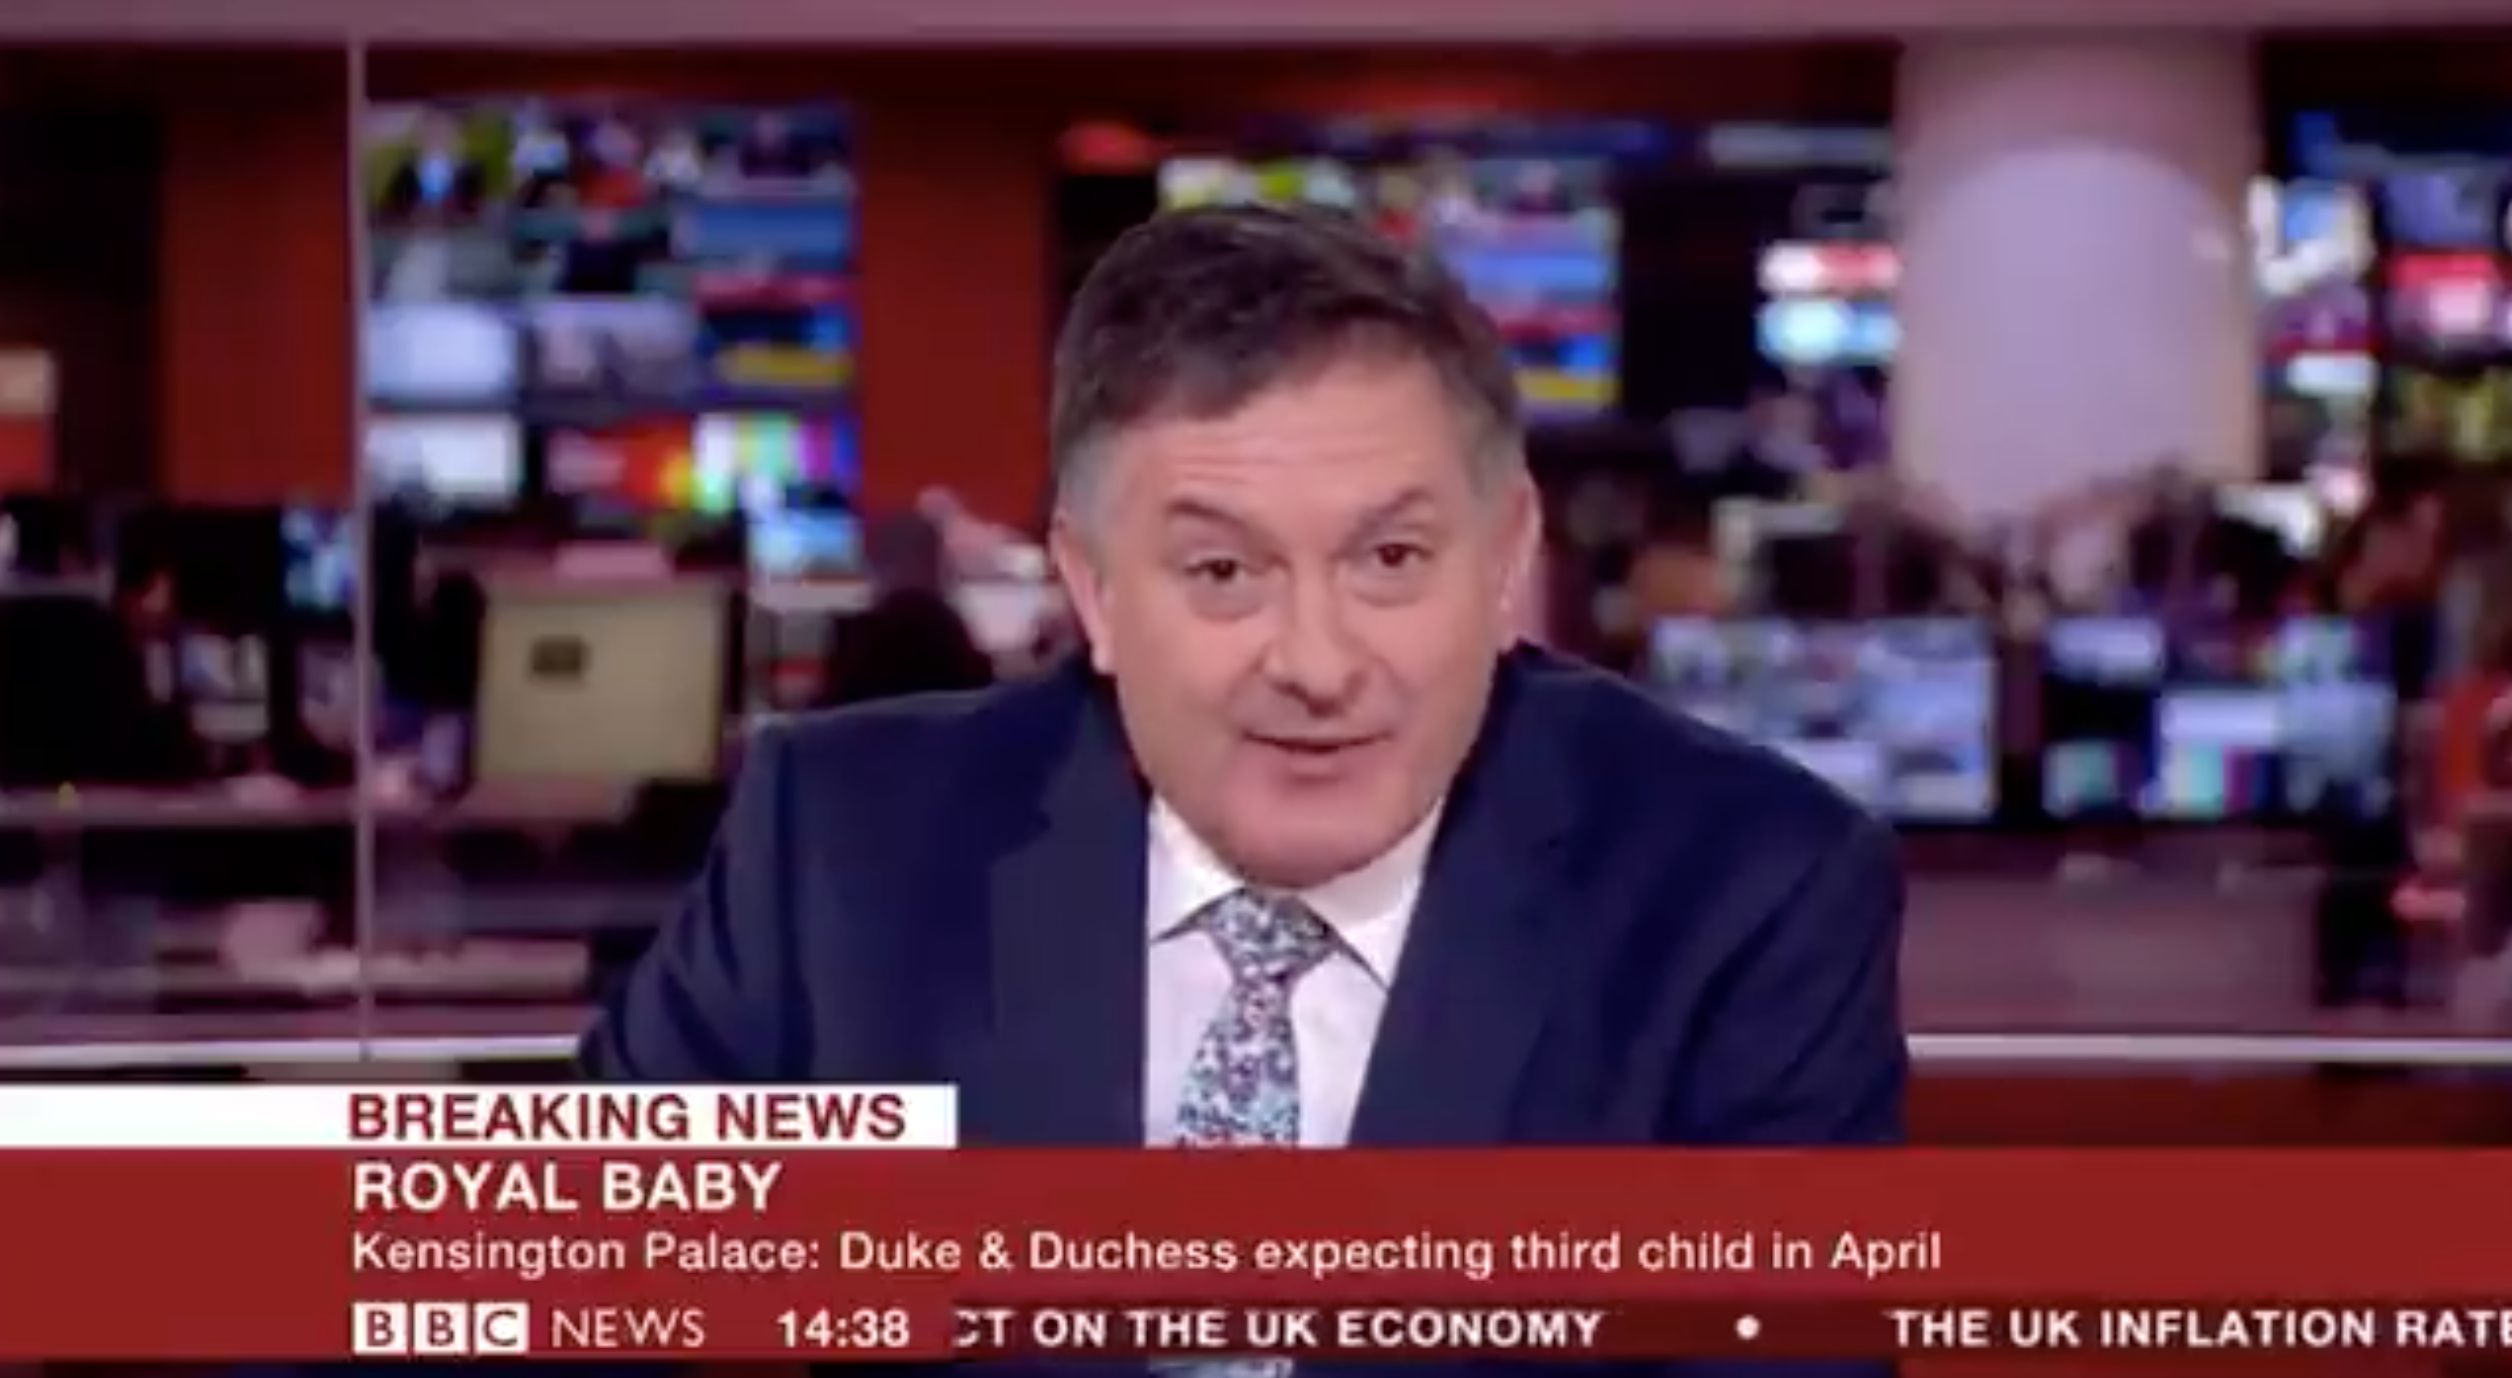 BBC Newsreader Simon McCoy Gives A Masterclass in How To Report The Royal Baby Due Date